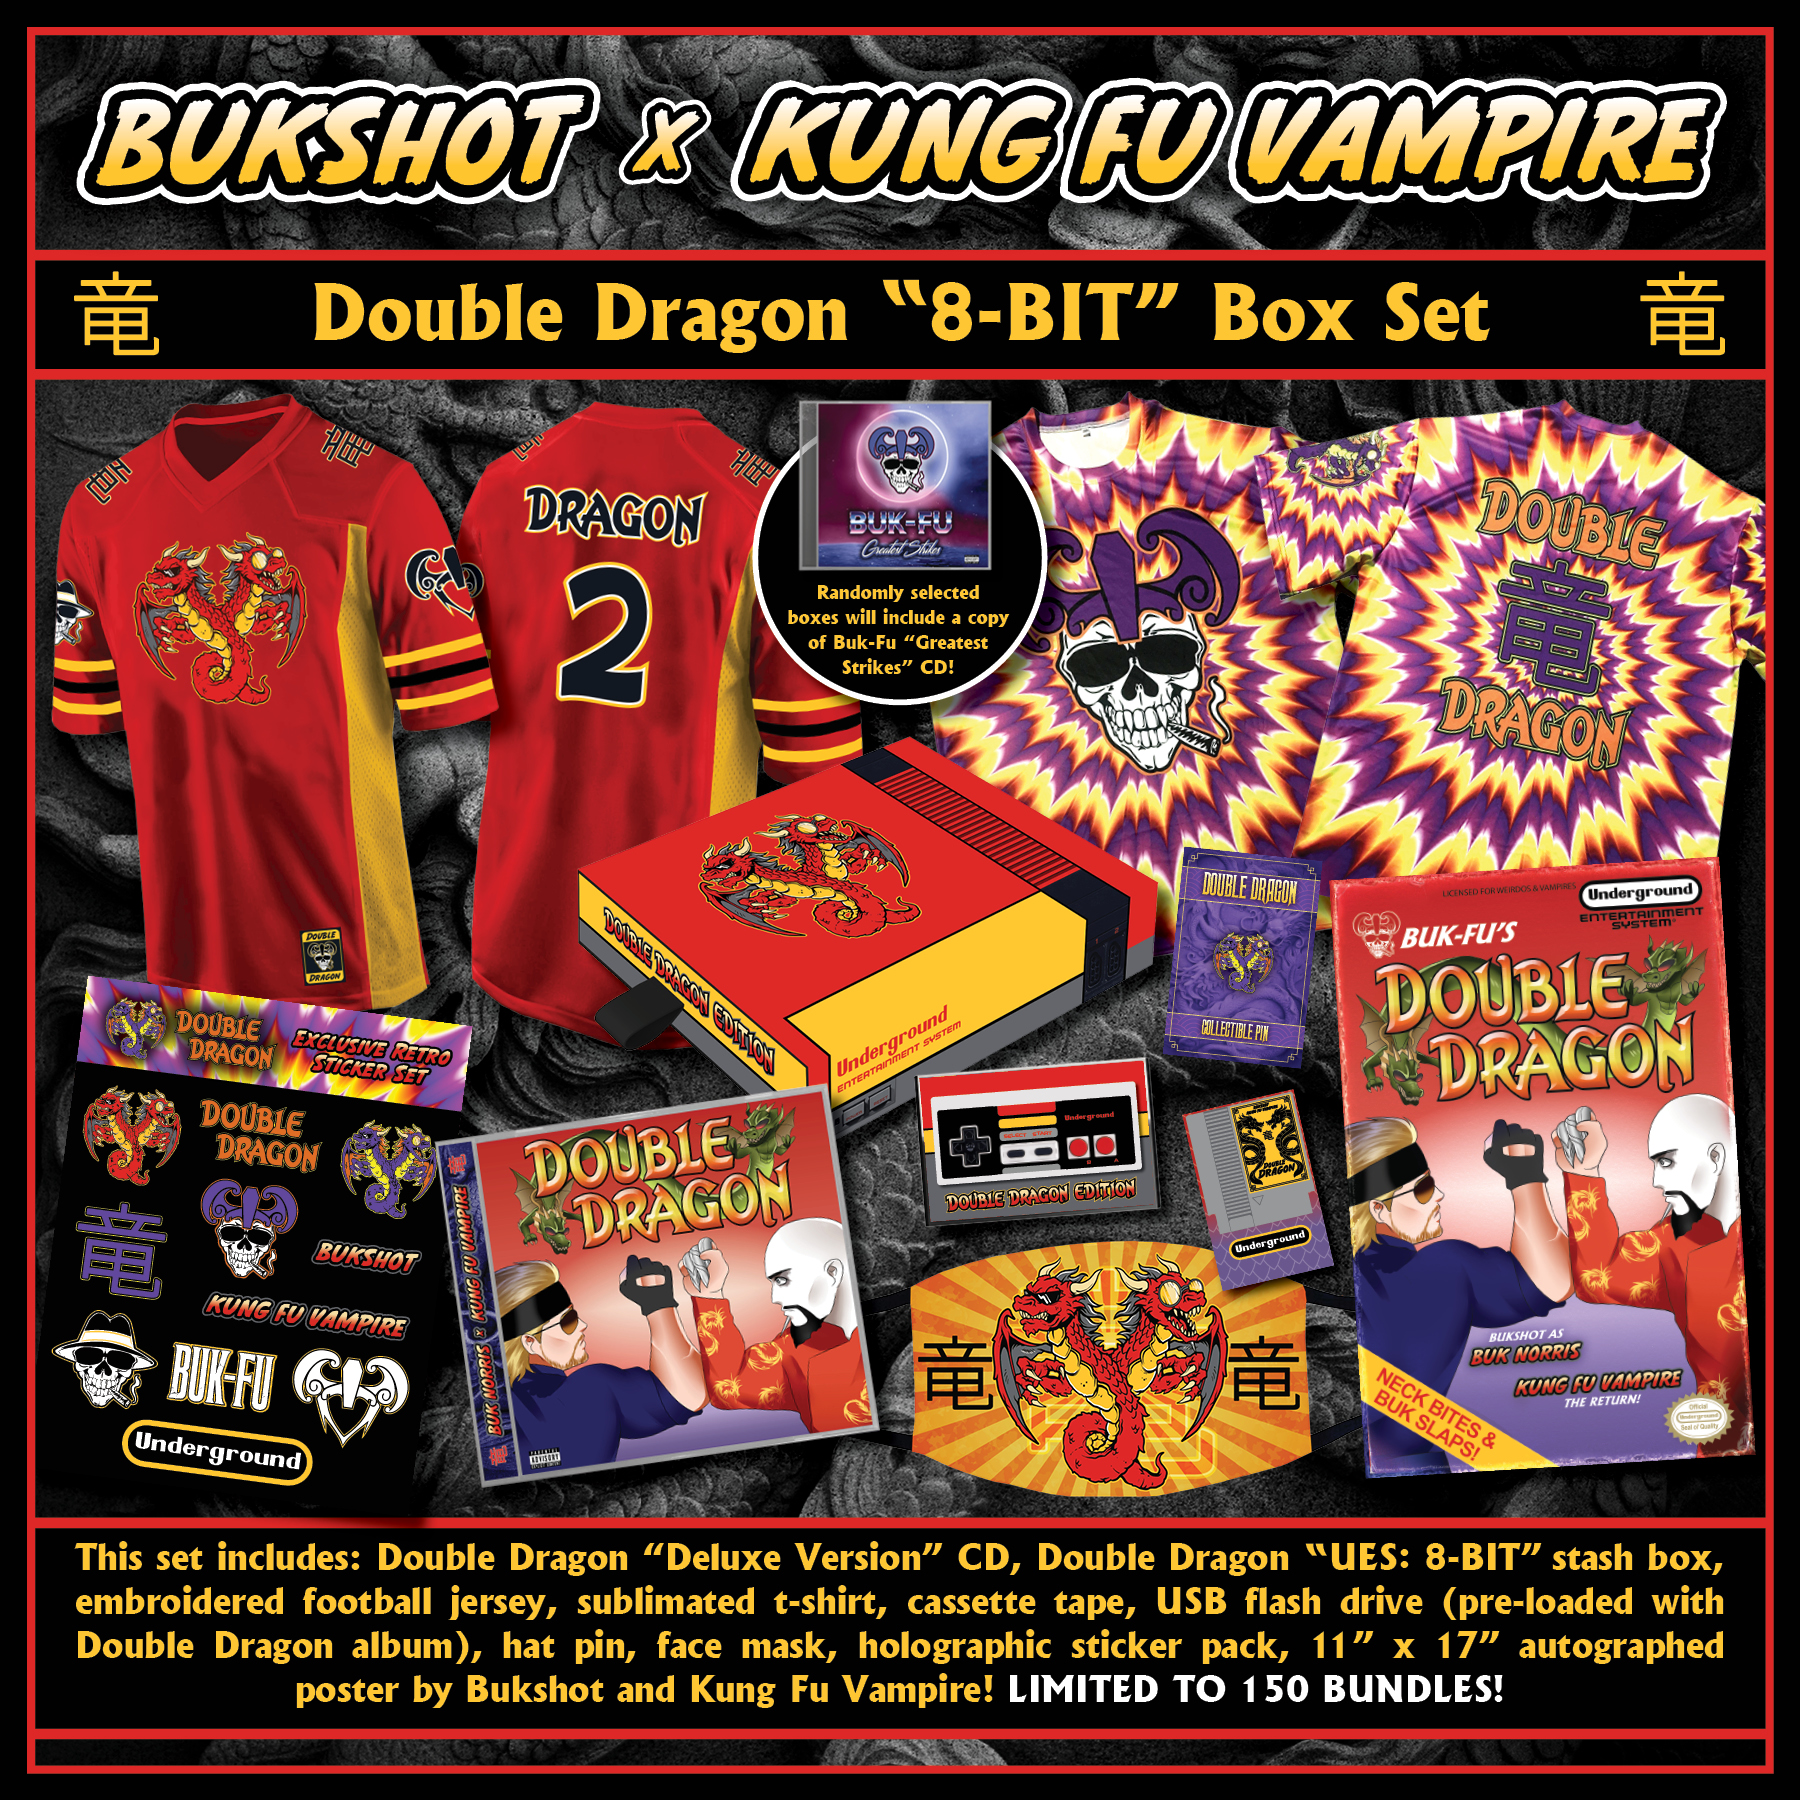 "Bukshot & Kung Fu Vampire ""Double Dragon"" 8-BIT Box Set [PRE-ORDER] (See Description Below For Details & Contents)"